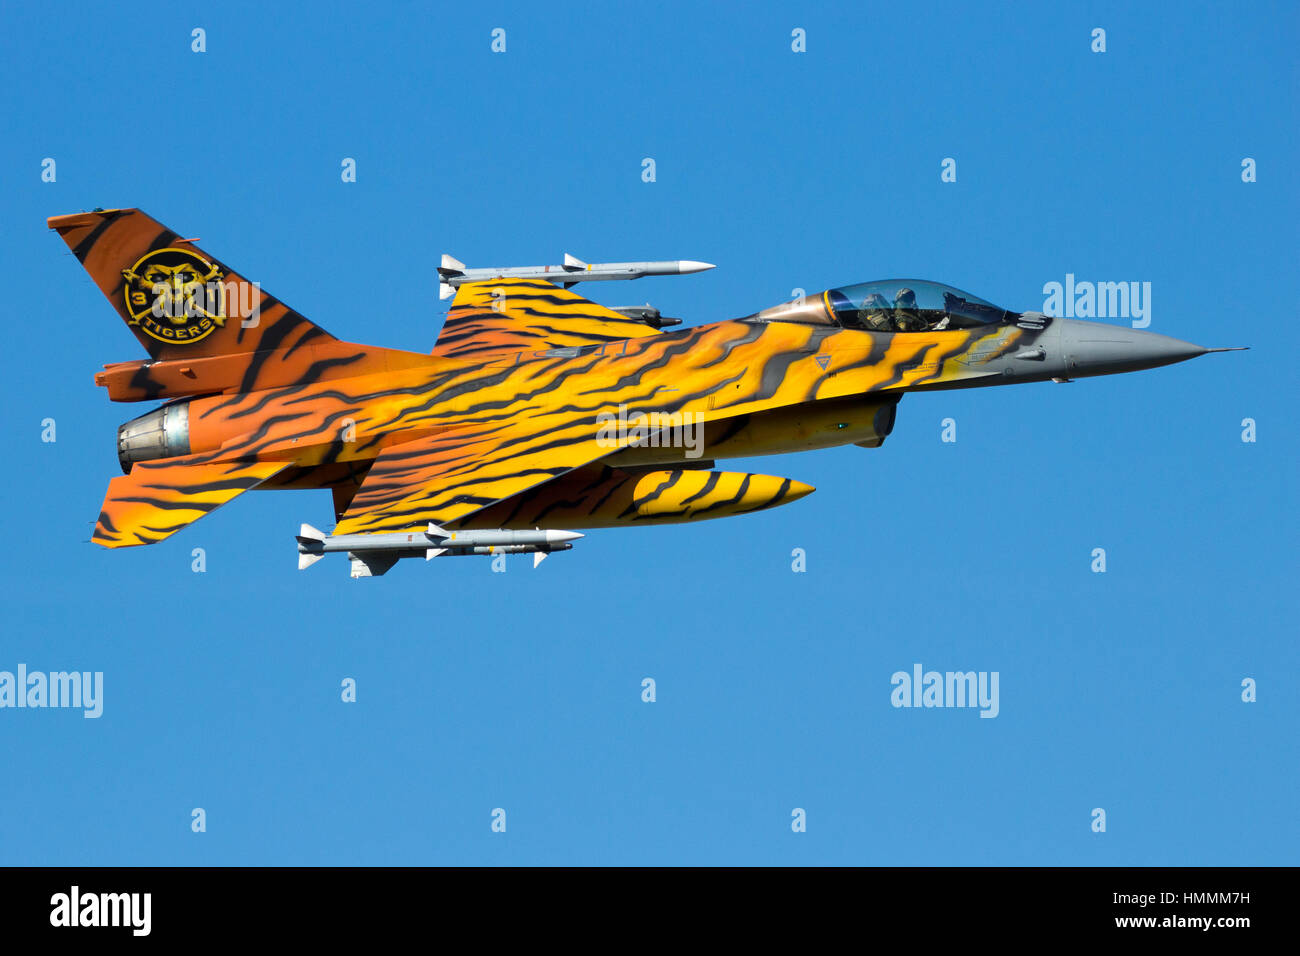 GILZE-RIJEN, THE NETHERLANDS - SEP 7, 2016: Special painted Belgian Air Force F-16 fighter jet making a fast flyby - Stock Image